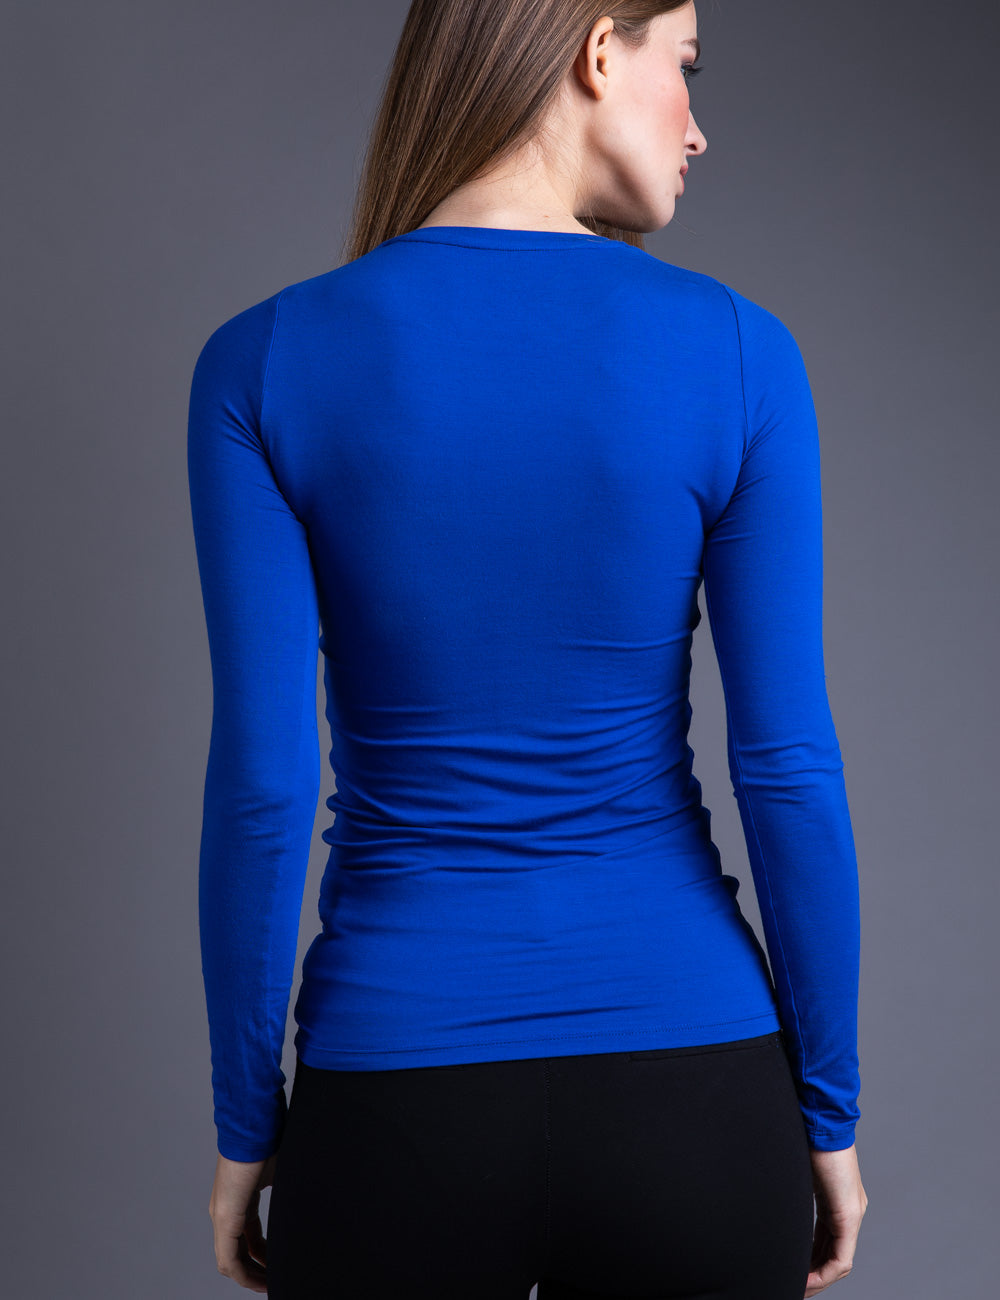 Majestic Long Sleeve Viscose Crewneck in Portofino Blue